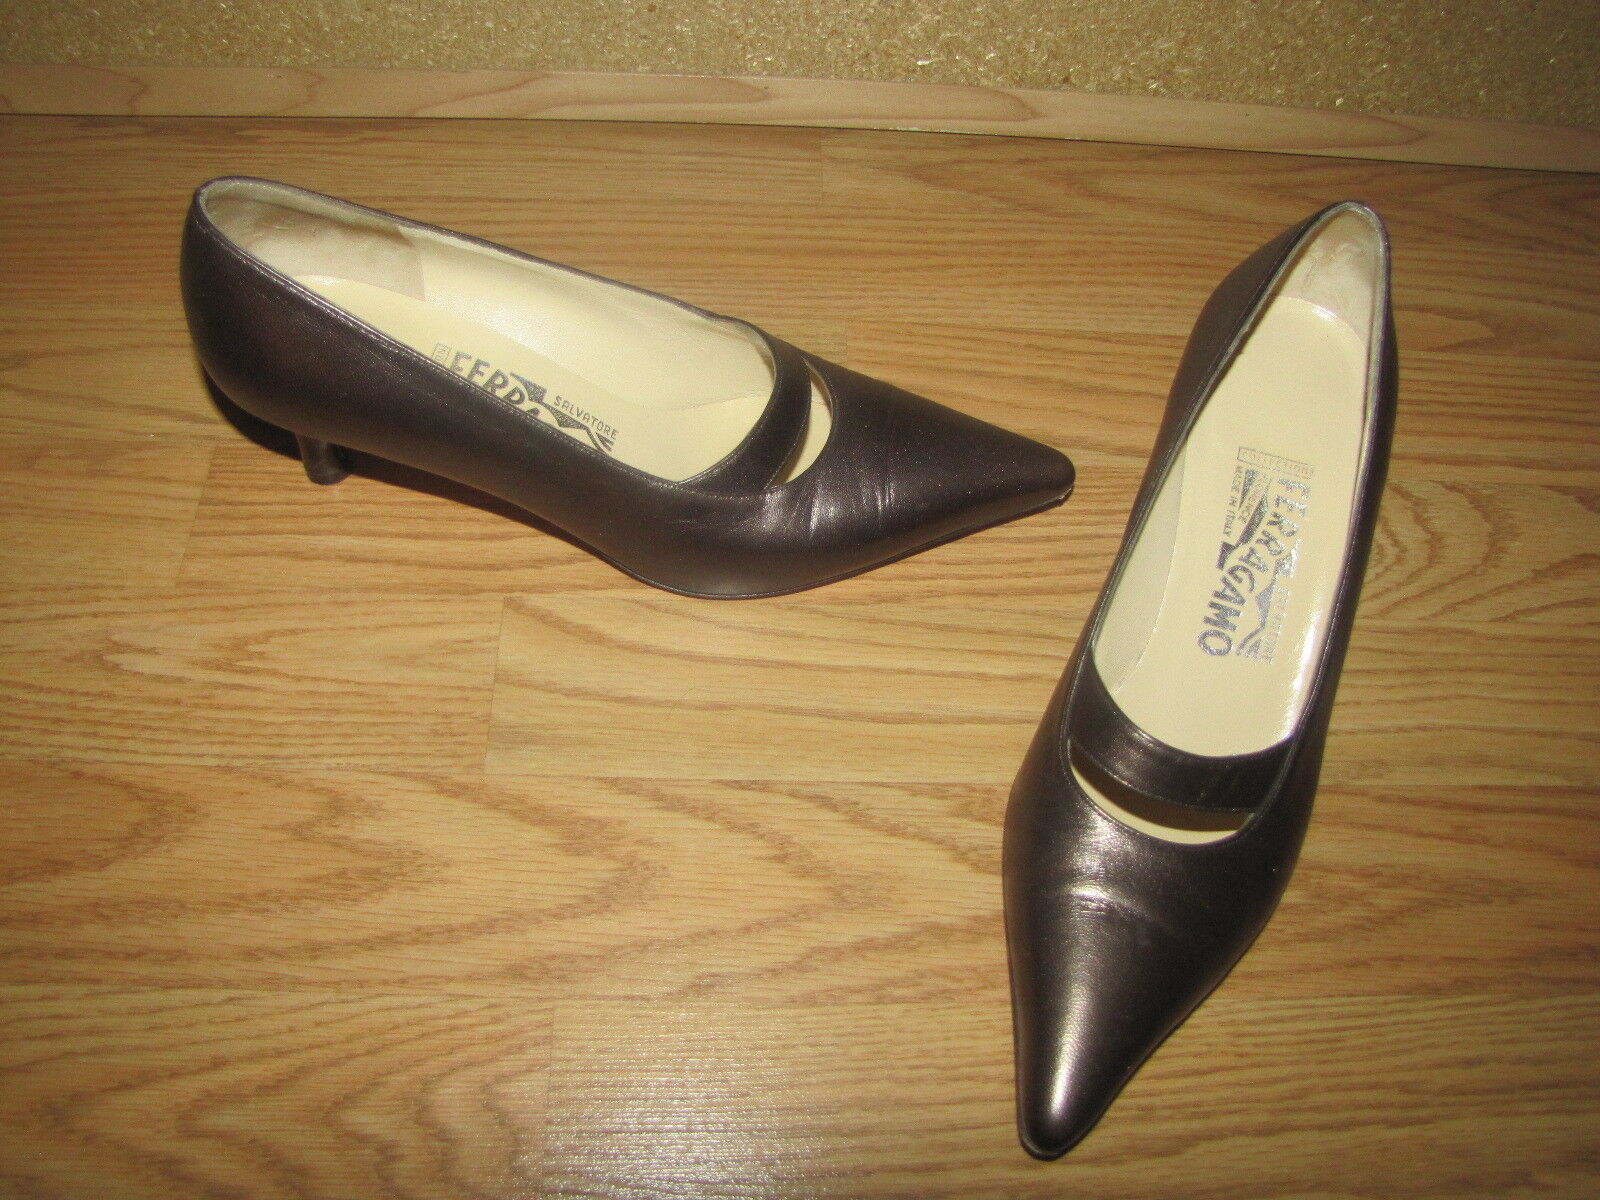 Salvatore Salvatore Salvatore Ferragamo Bronze Metallic Classic Pumps - 8.5B European 39.5 EUC dc617f